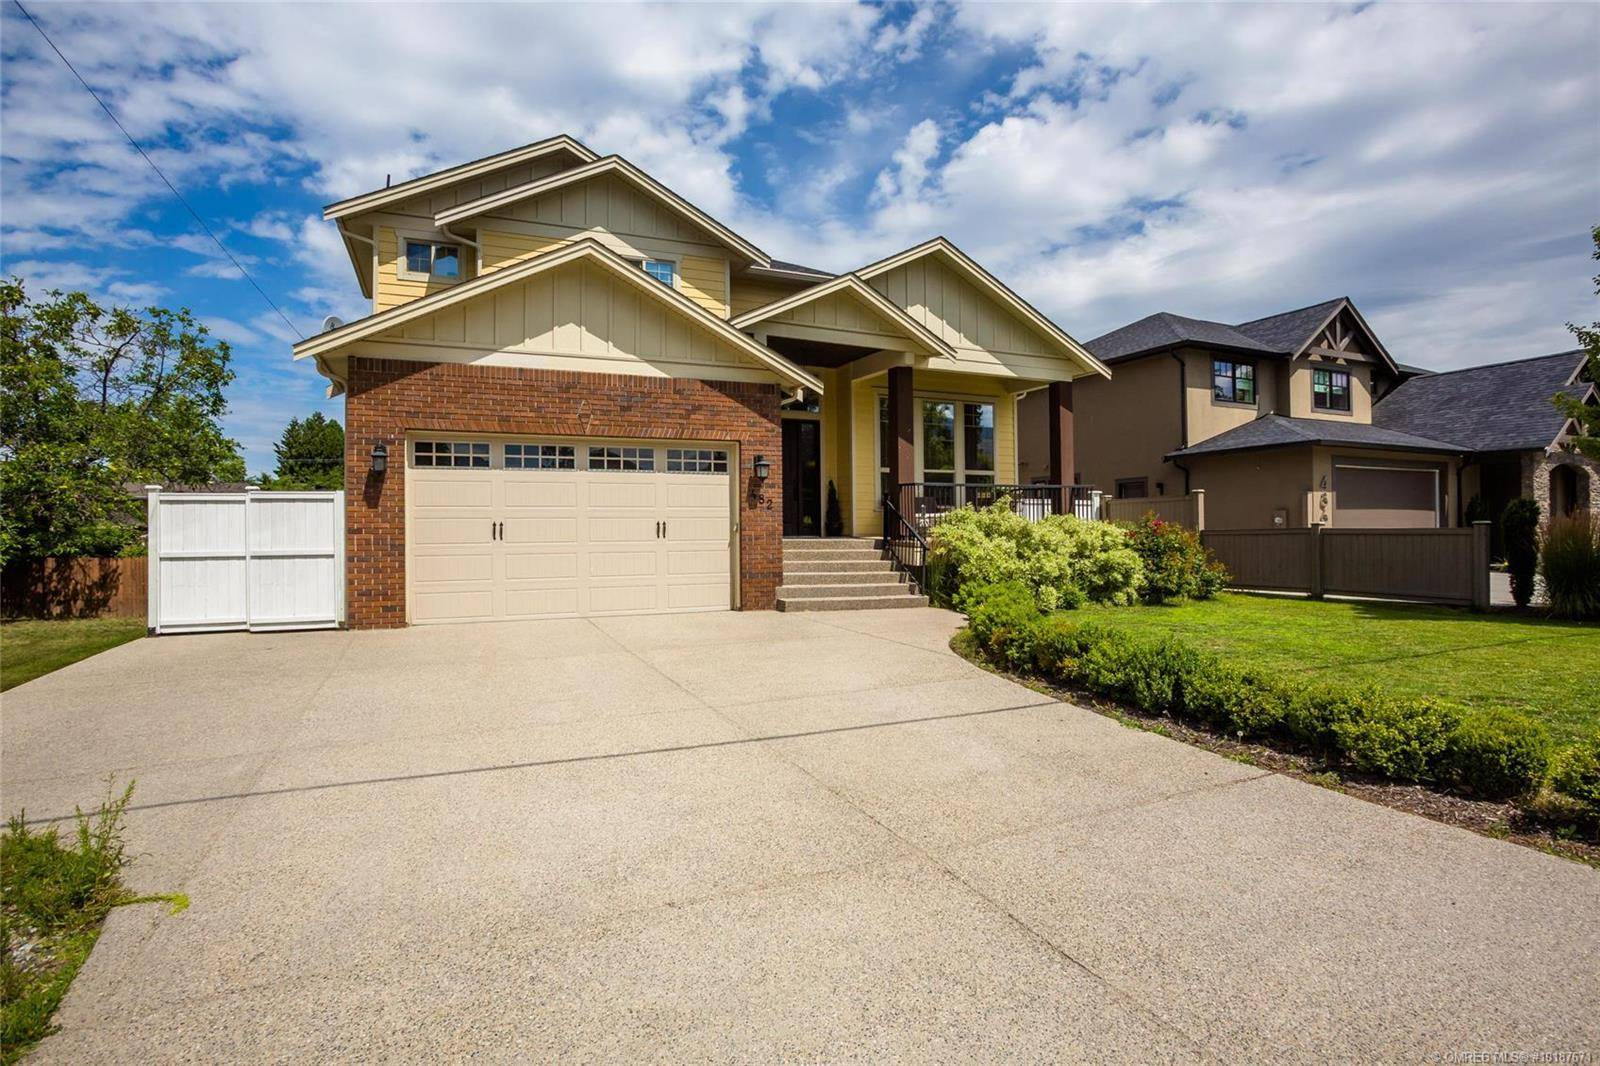 House for sale at 482 Knowles Rd Kelowna British Columbia - MLS: 10187671